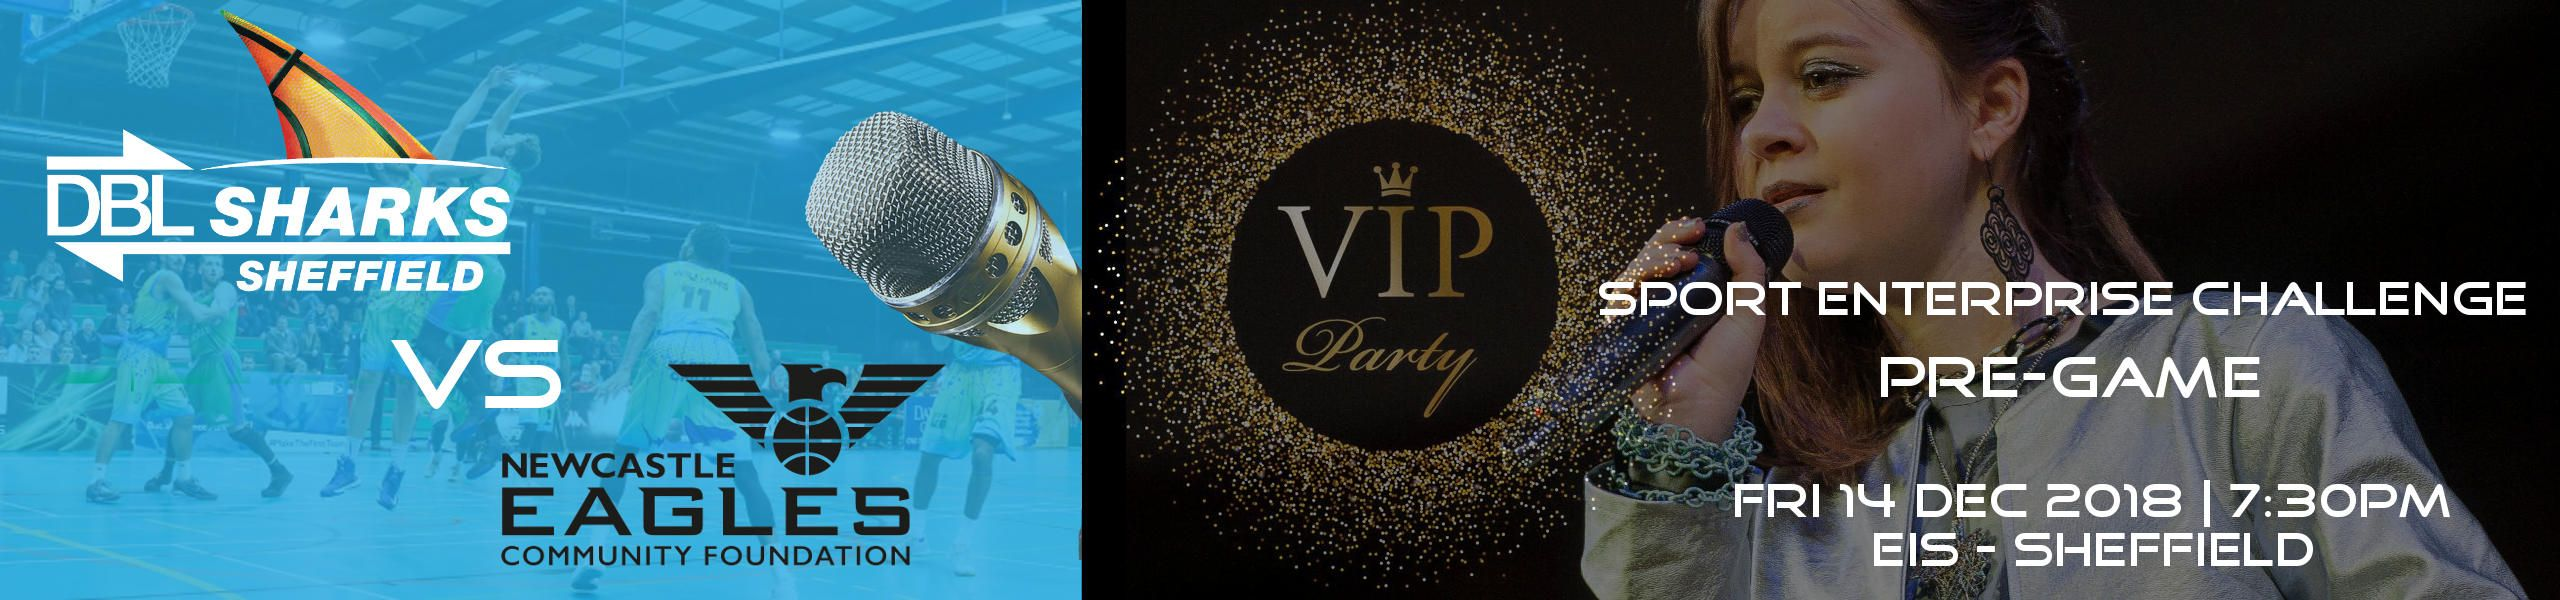 Elisa Neri - VIP Party Pre-Game - Pallacanestro - Sharks Sheffiled vs Newcastle Eagles - IES Sheffiled - UK